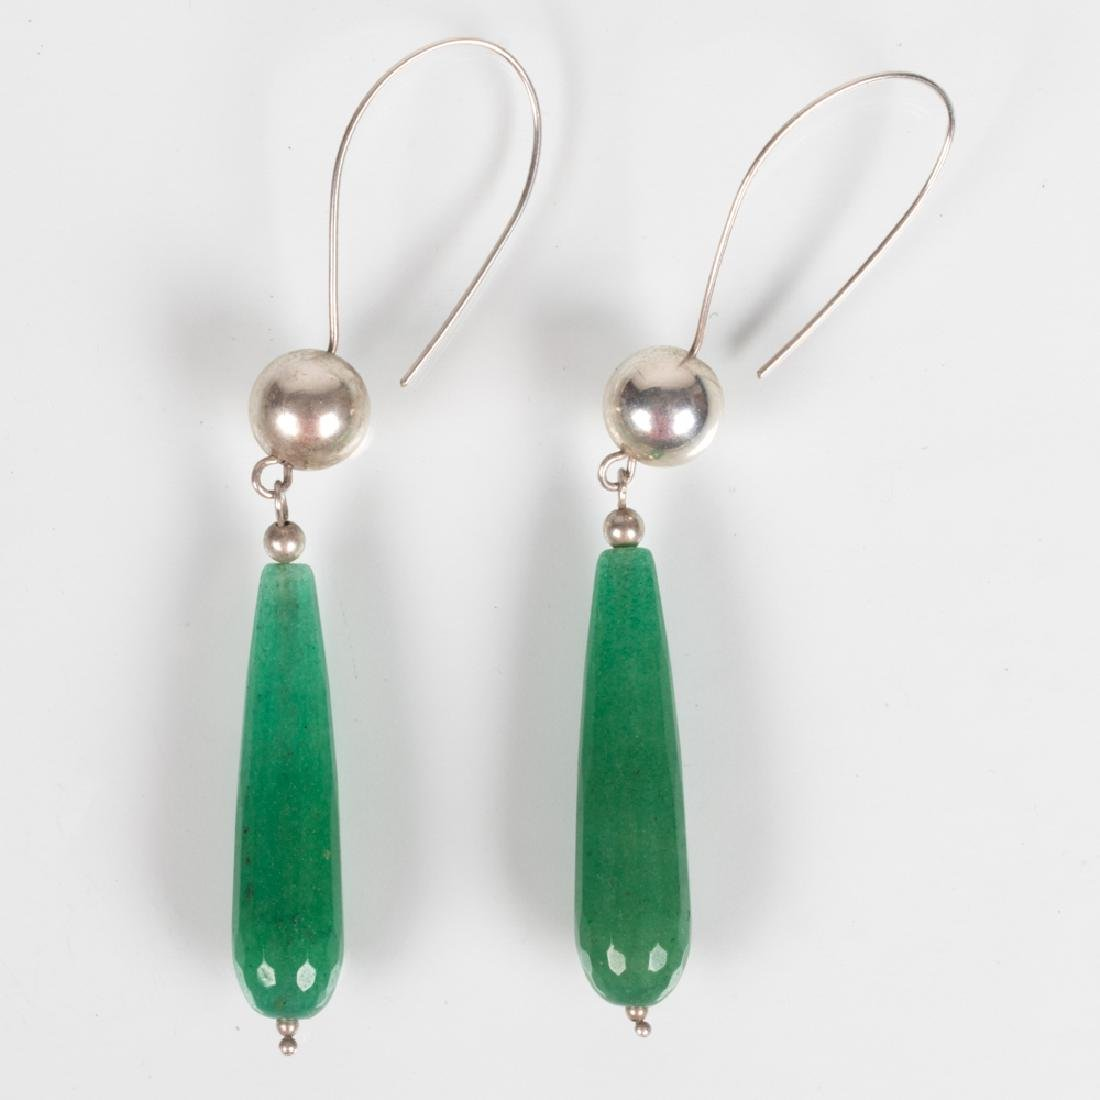 A Pair of Silver and Spinach Jade Drop Earrings.